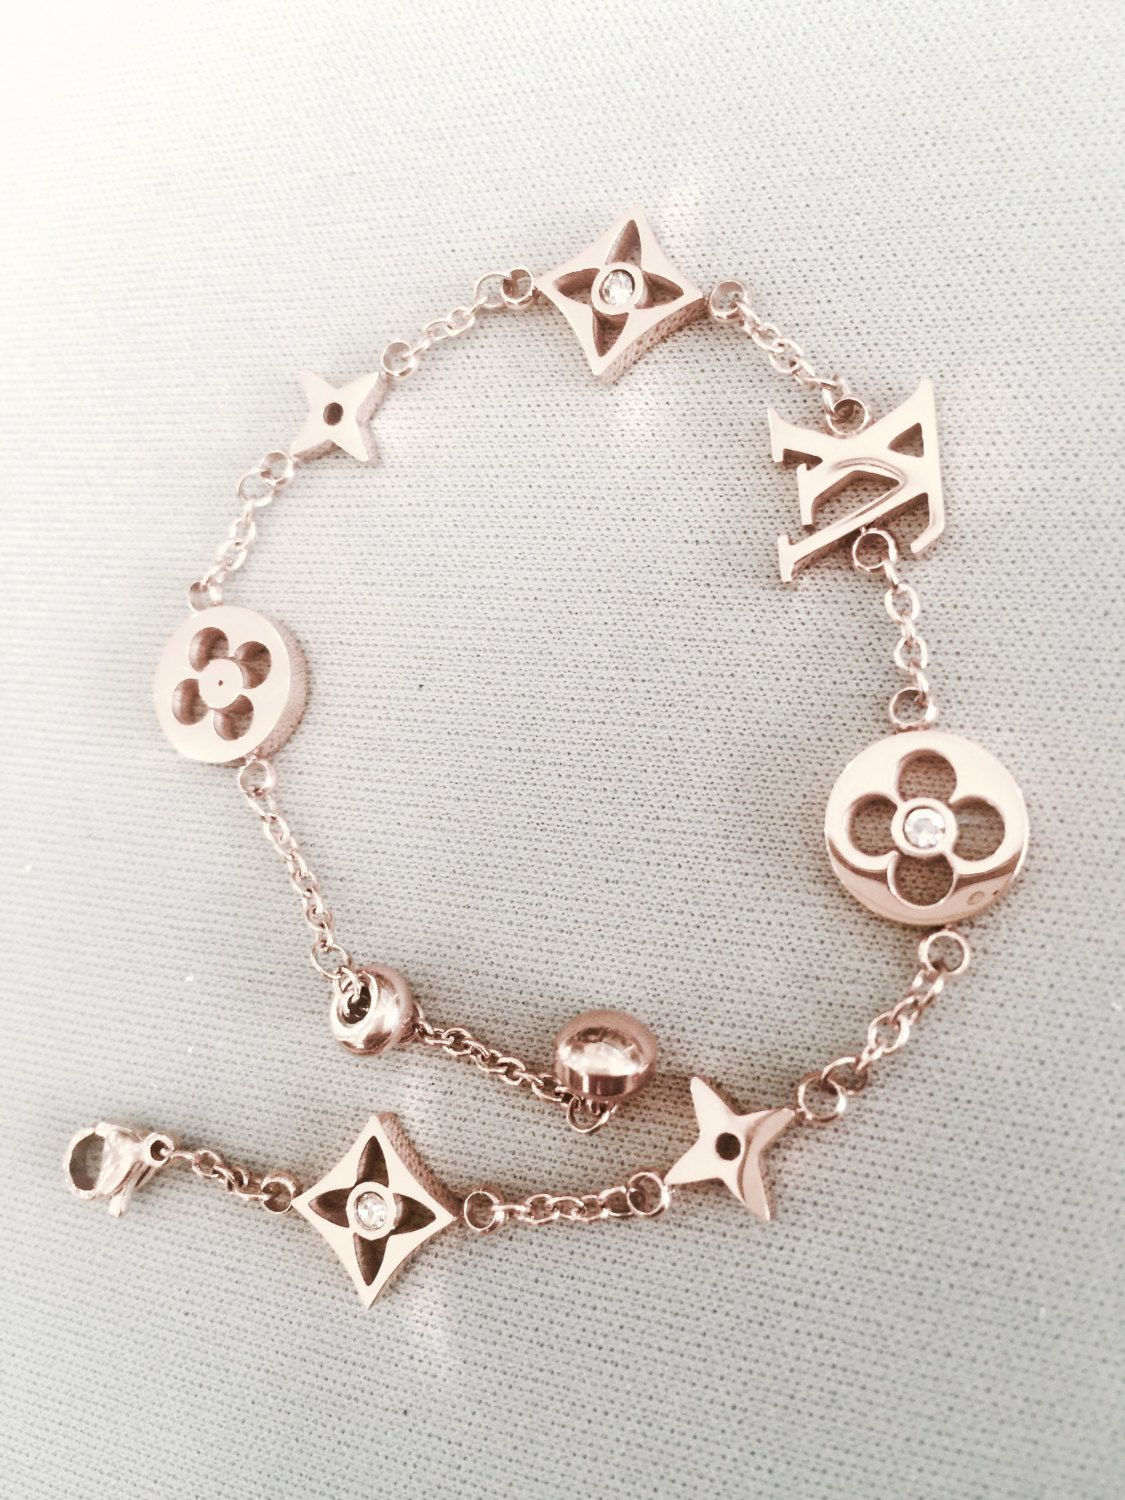 Lv bracelet jewellery watches keys pinterest bracelets